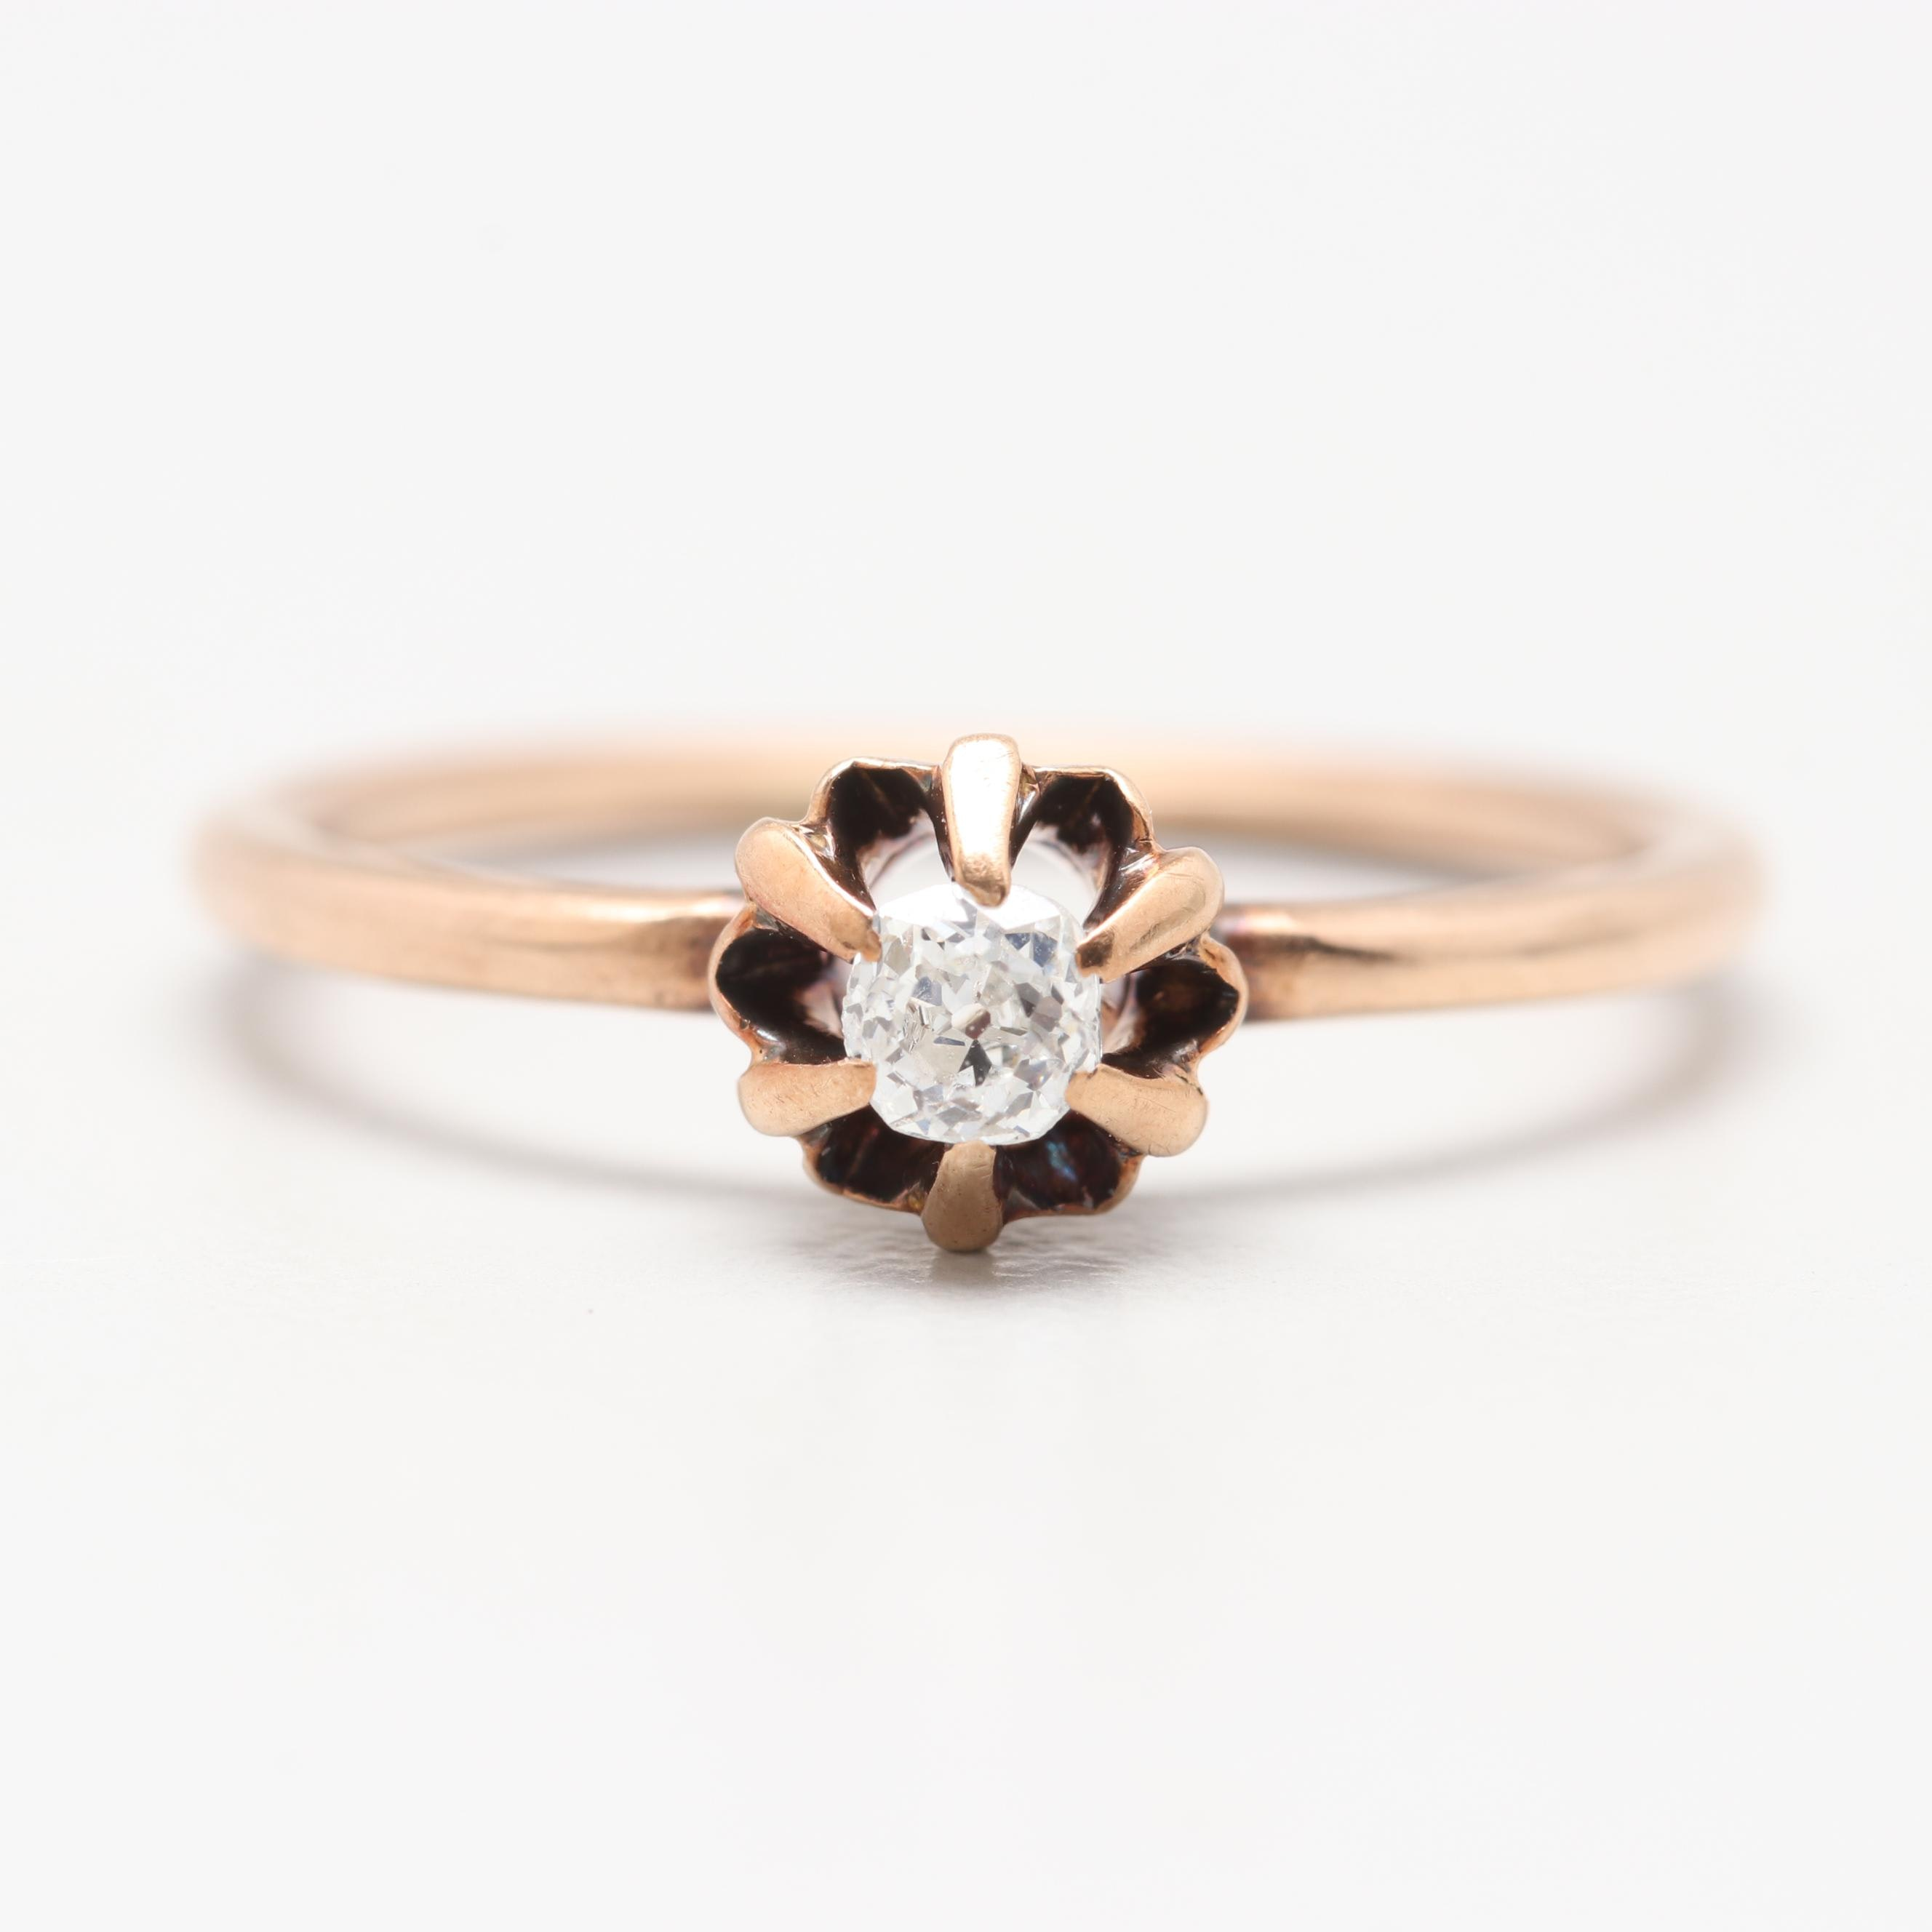 Victorian 10K Yellow Gold Diamond Solitaire Ring